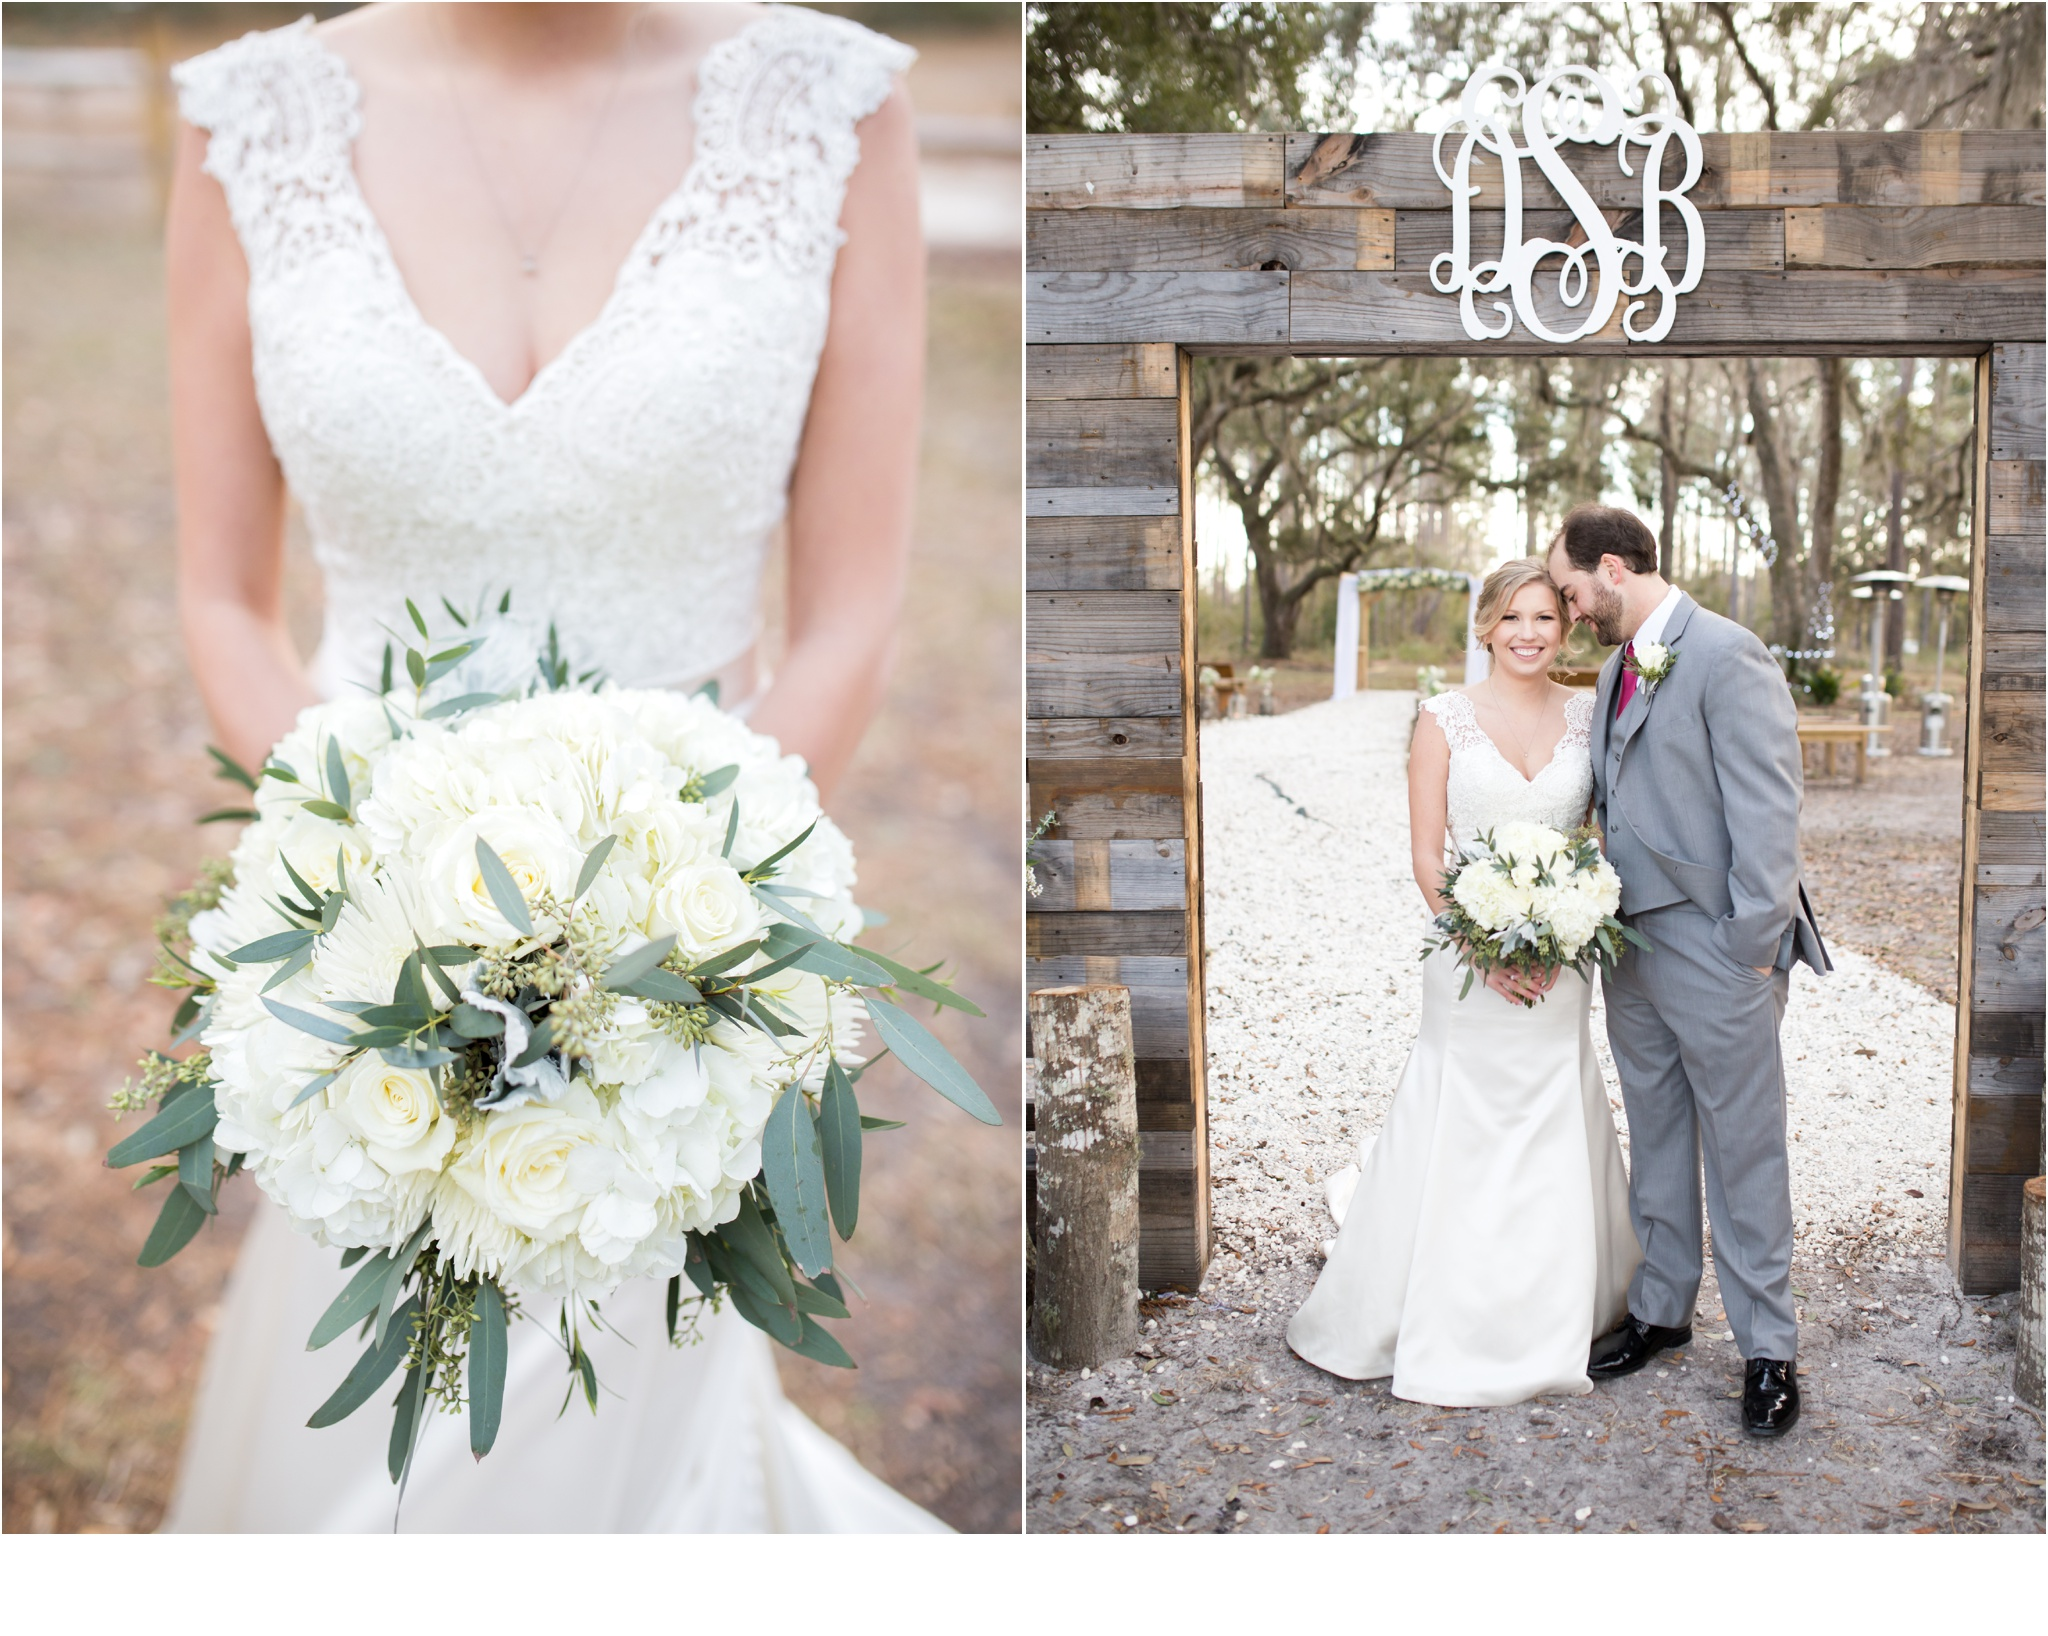 Rainey_Gregg_Photography_St._Simons_Island_Georgia_California_Wedding_Portrait_Photography_0507.jpg